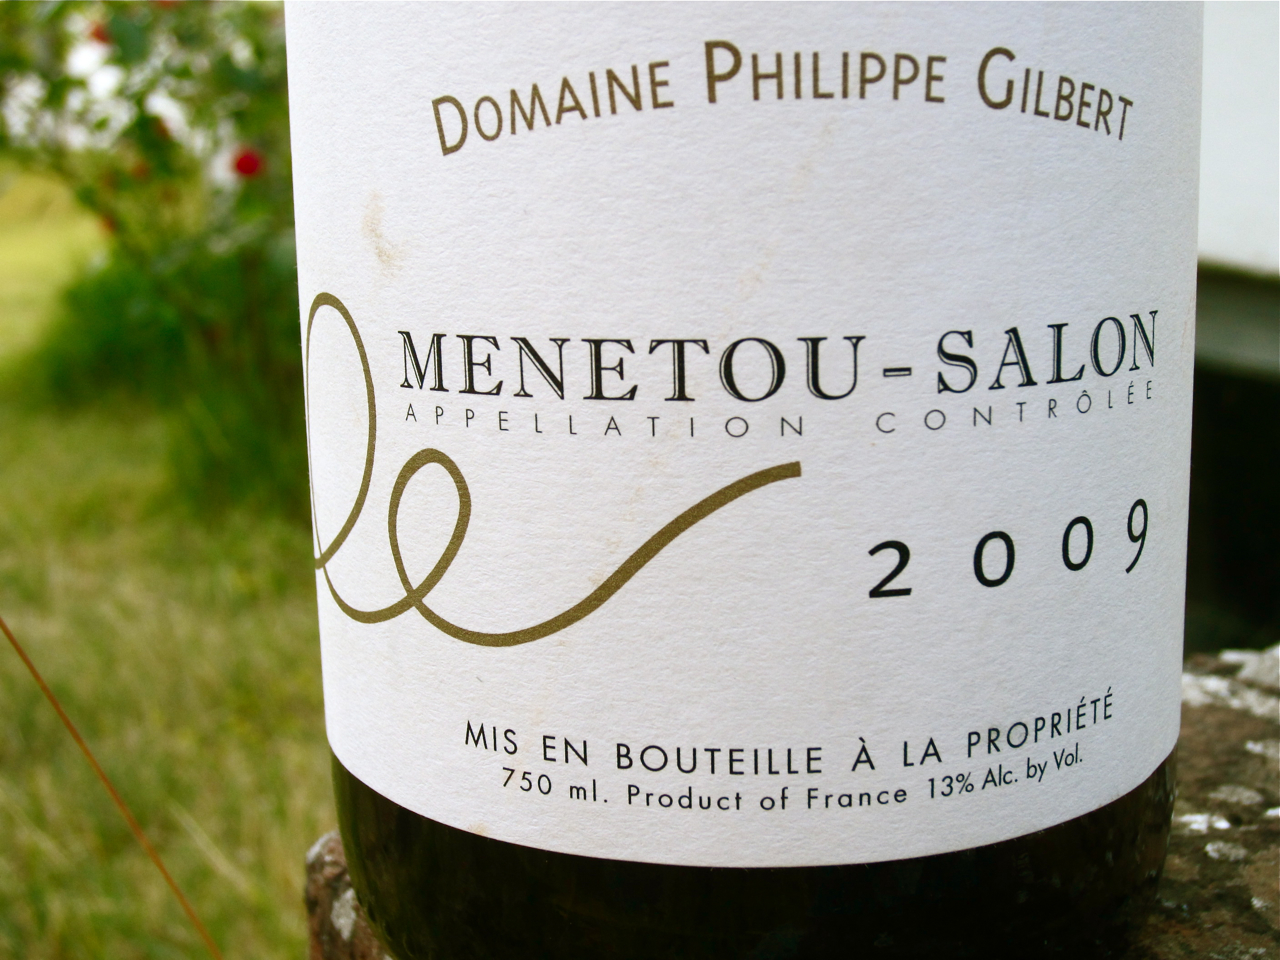 Finare vinare 2009 philippe gilbert menetou salon rouge for Menetou salon 2012